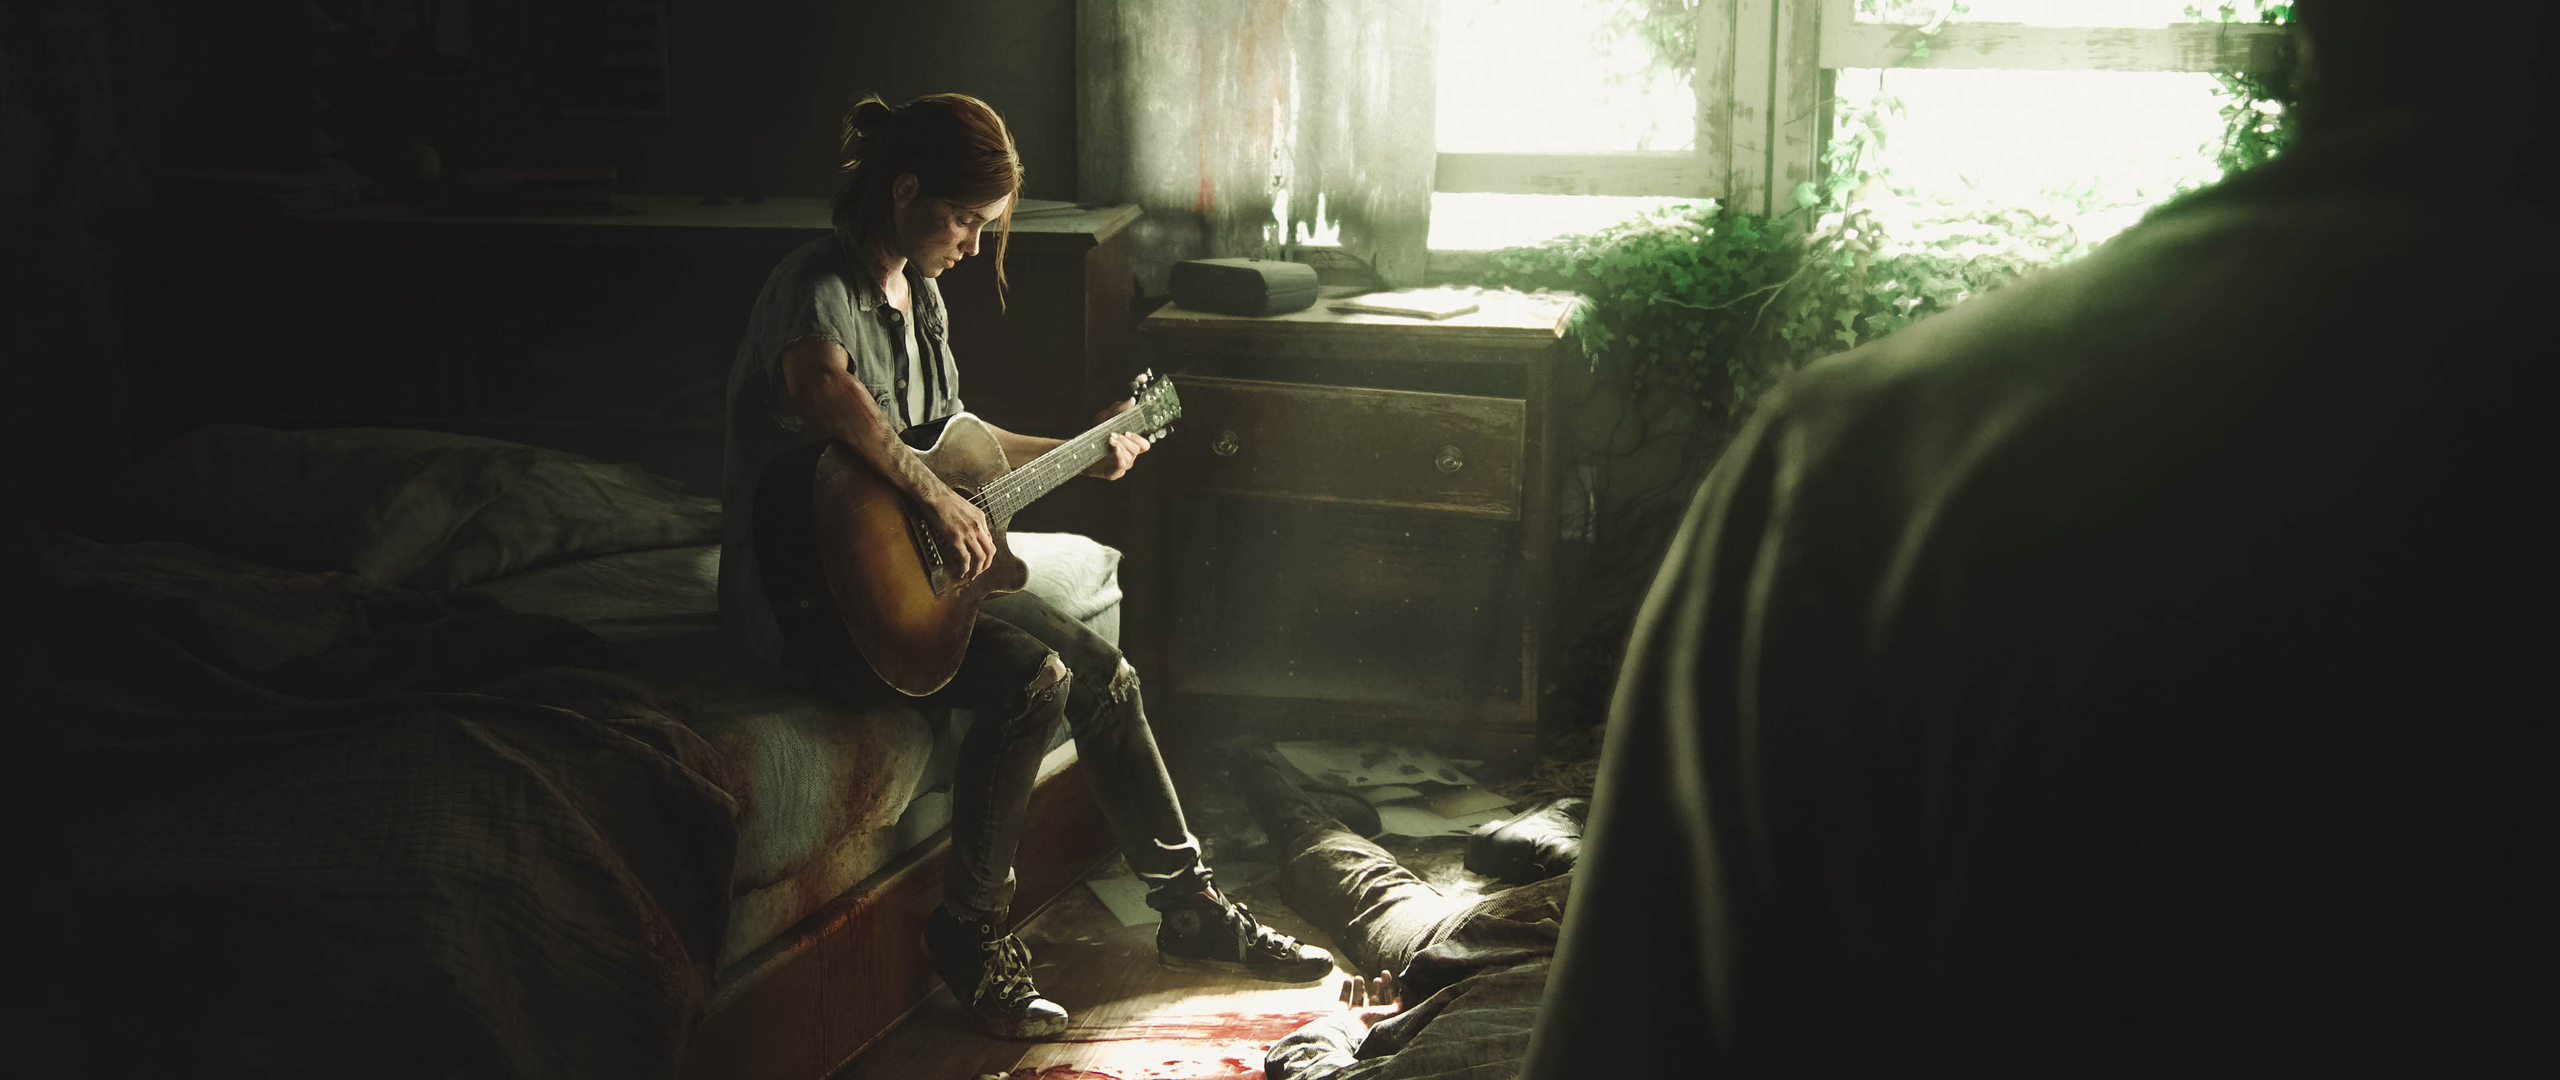 2560x1080 The Last Of Us Part II 2560x1080 Resolution HD 4k Wallpapers, Images, Backgrounds ...